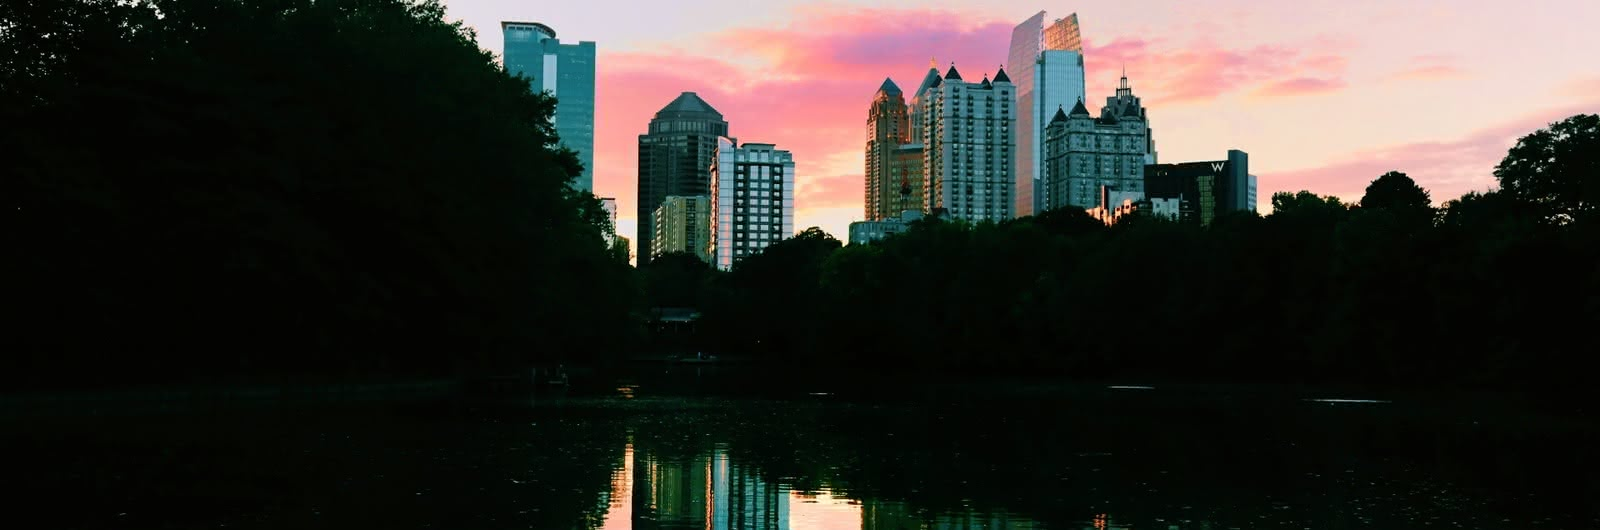 atlanta city header